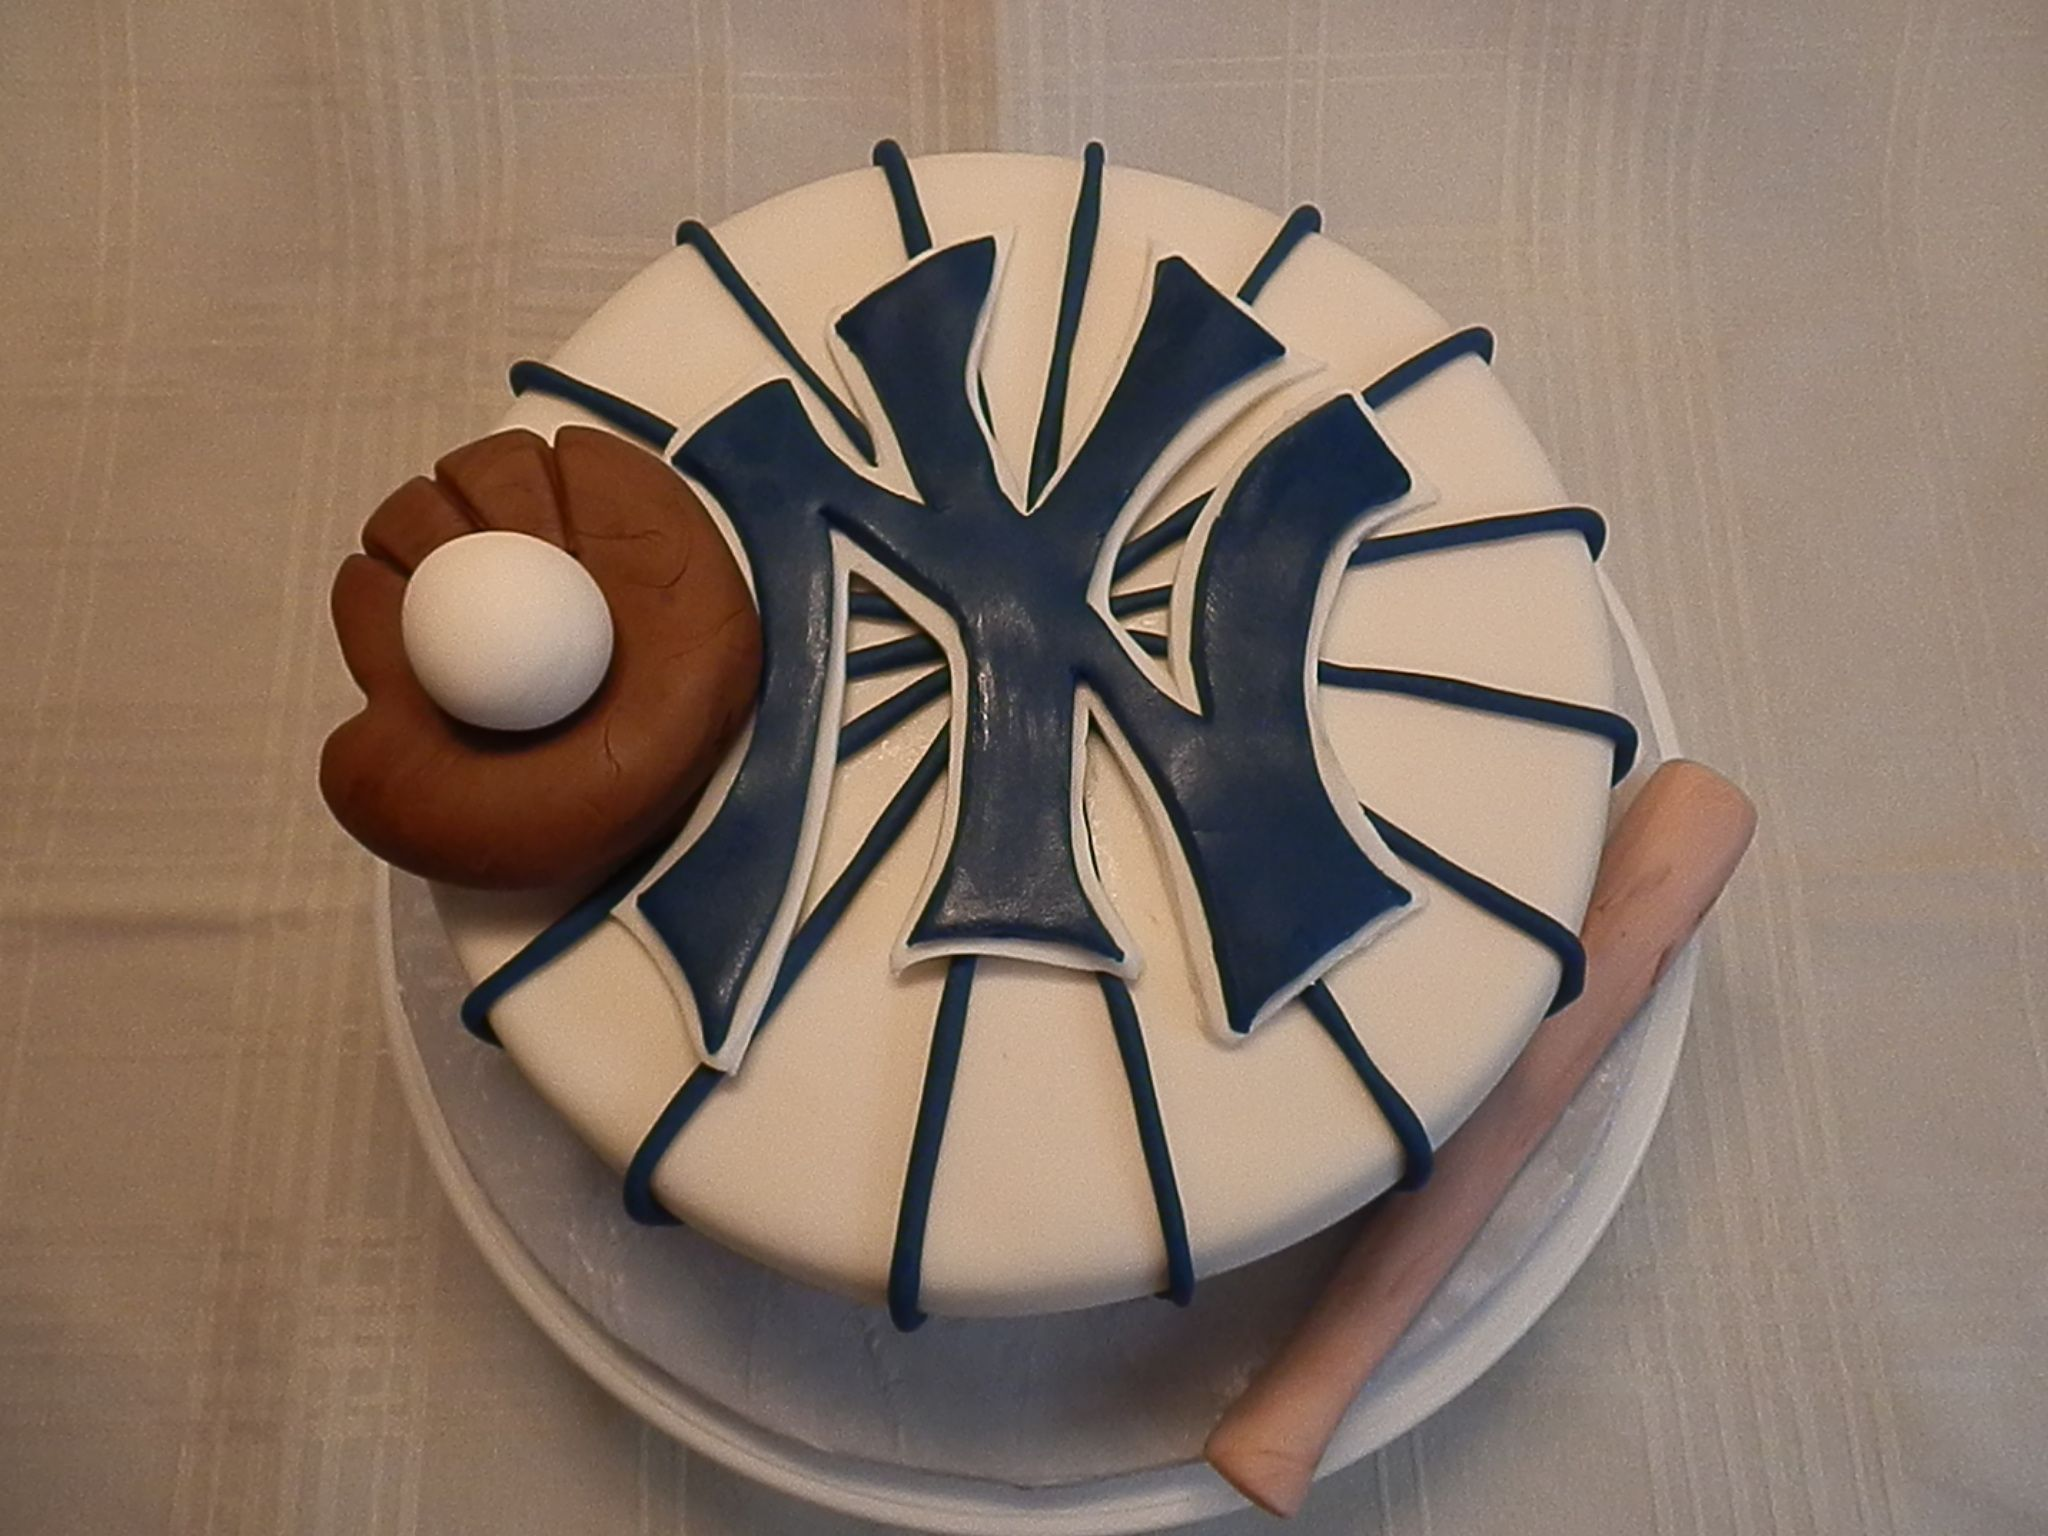 Pin By Laura G On Endulza Tu Vida Baseball Birthday Cakes Grooms Cake Yankee Cake